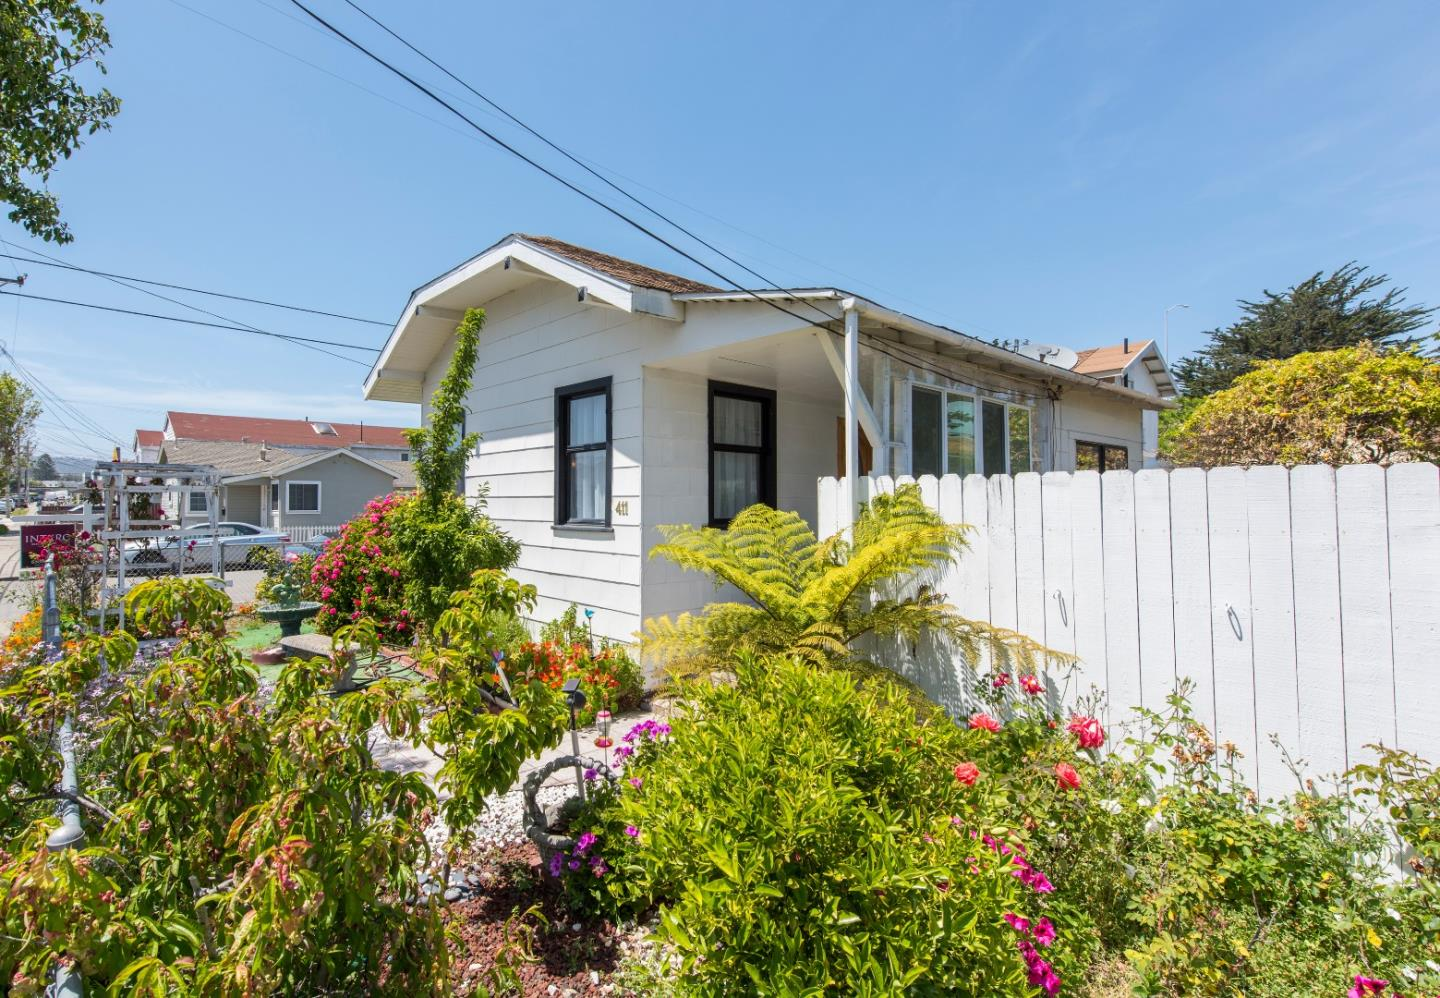 Additional photo for property listing at 411 Walnut Street  San Bruno, California 94066 United States